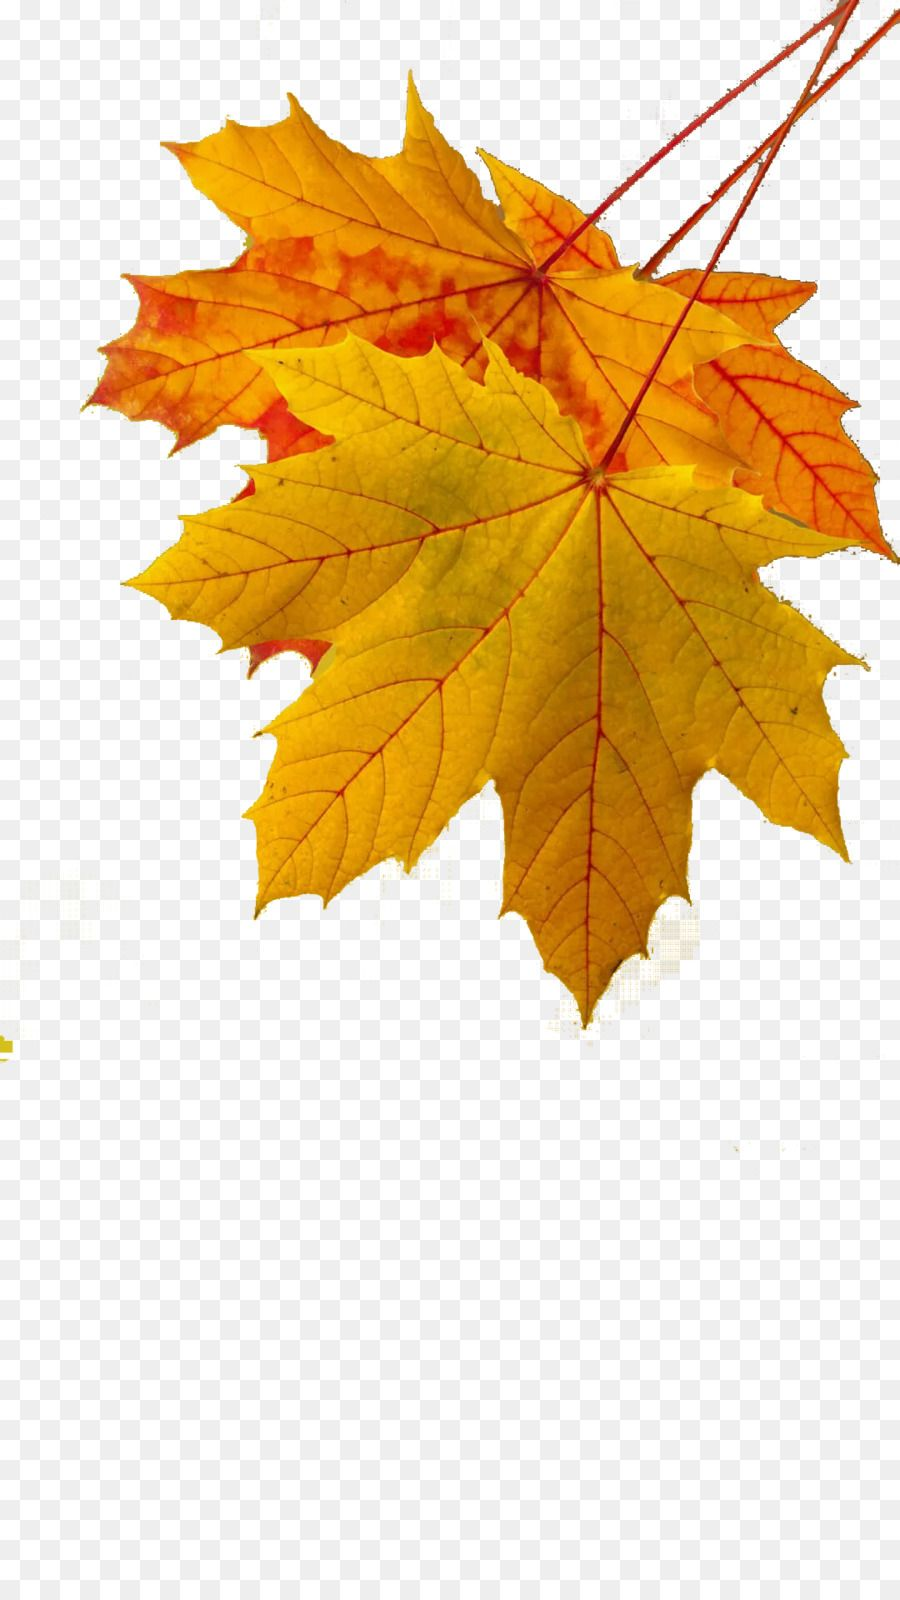 Maple Leaf Autumn Leaf Color Yellow Golden Autumn Leaves Png Is